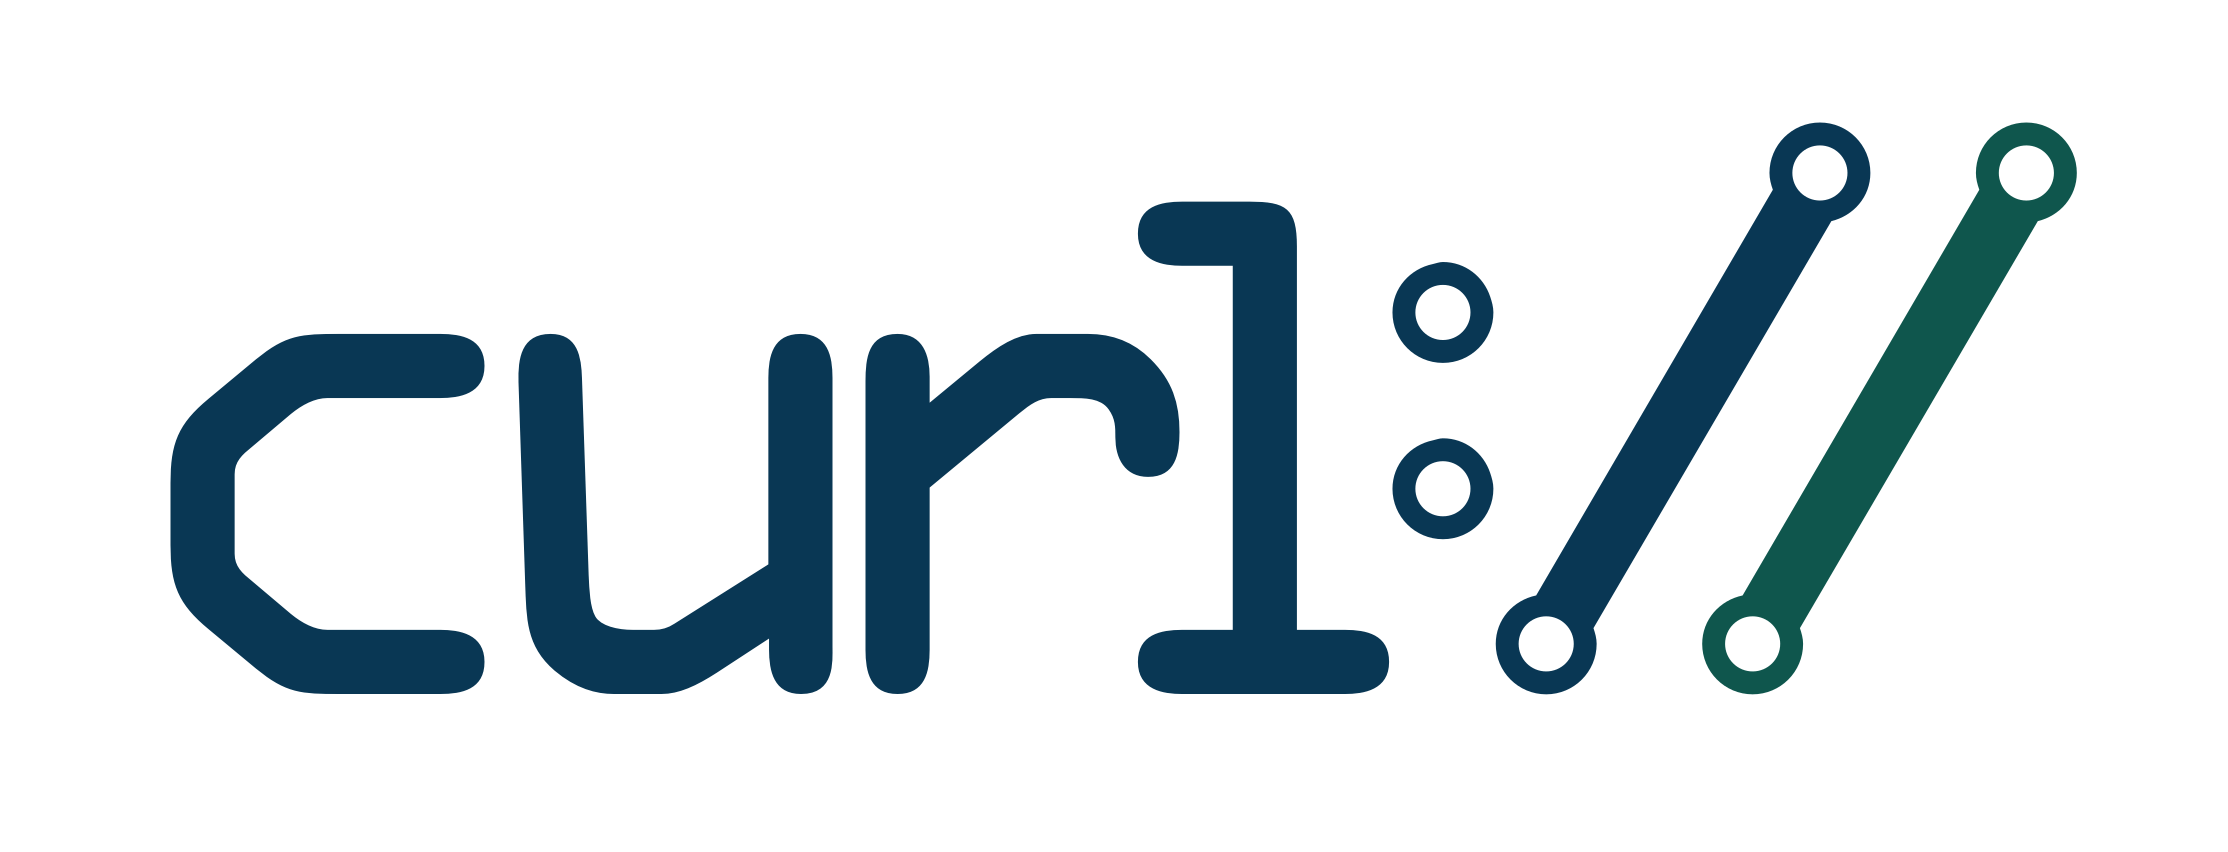 curl-command